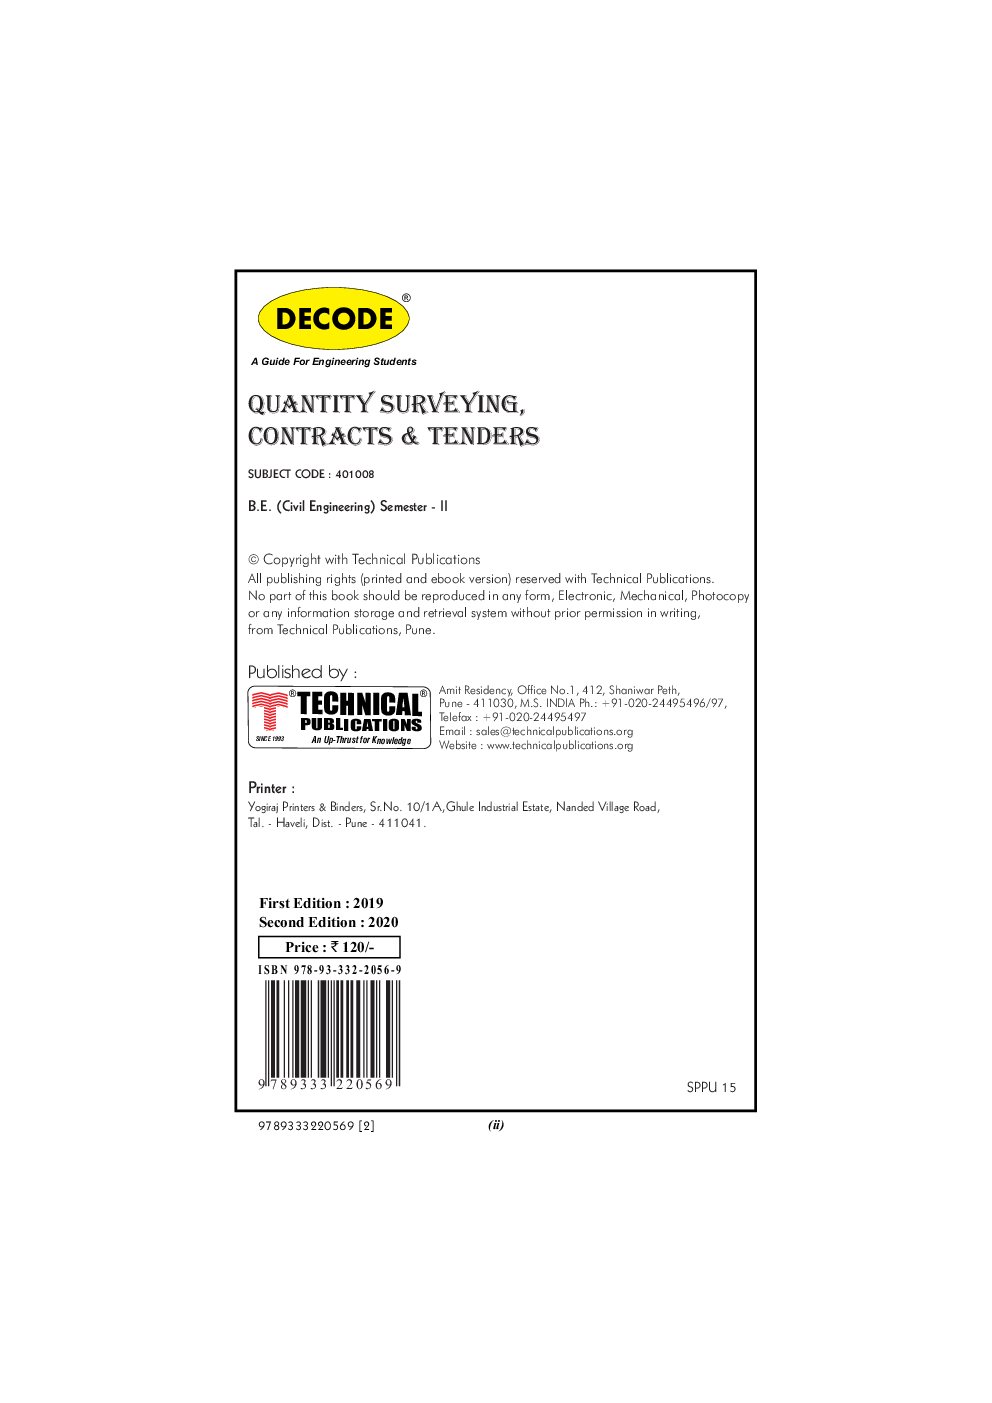 Download DECODE Quantity Surveying, Contracts & Tenders